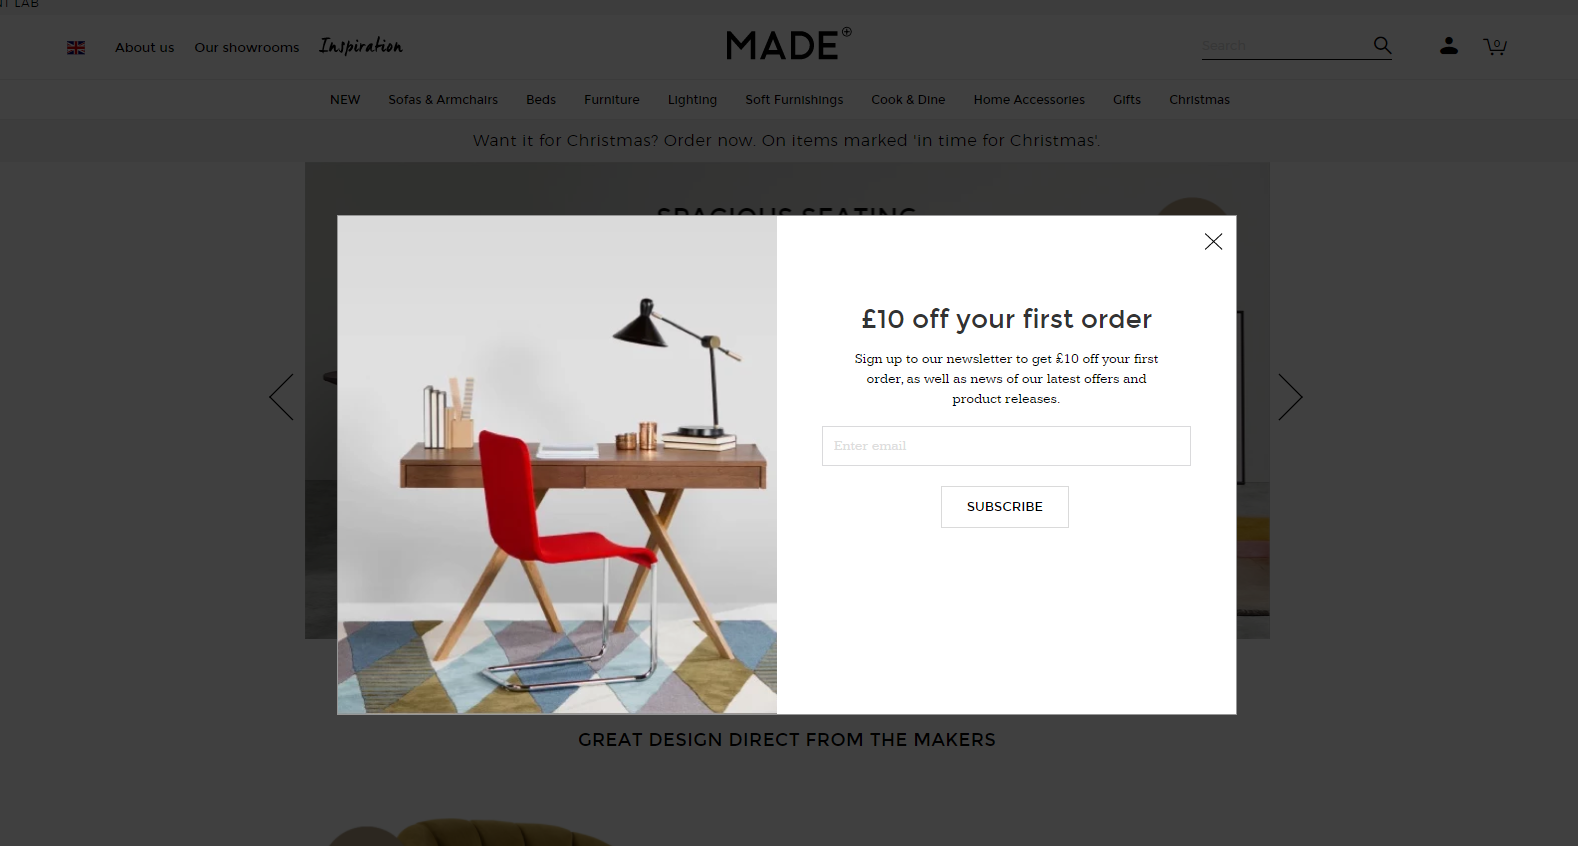 a lightbox popup on ecommerce website made.com